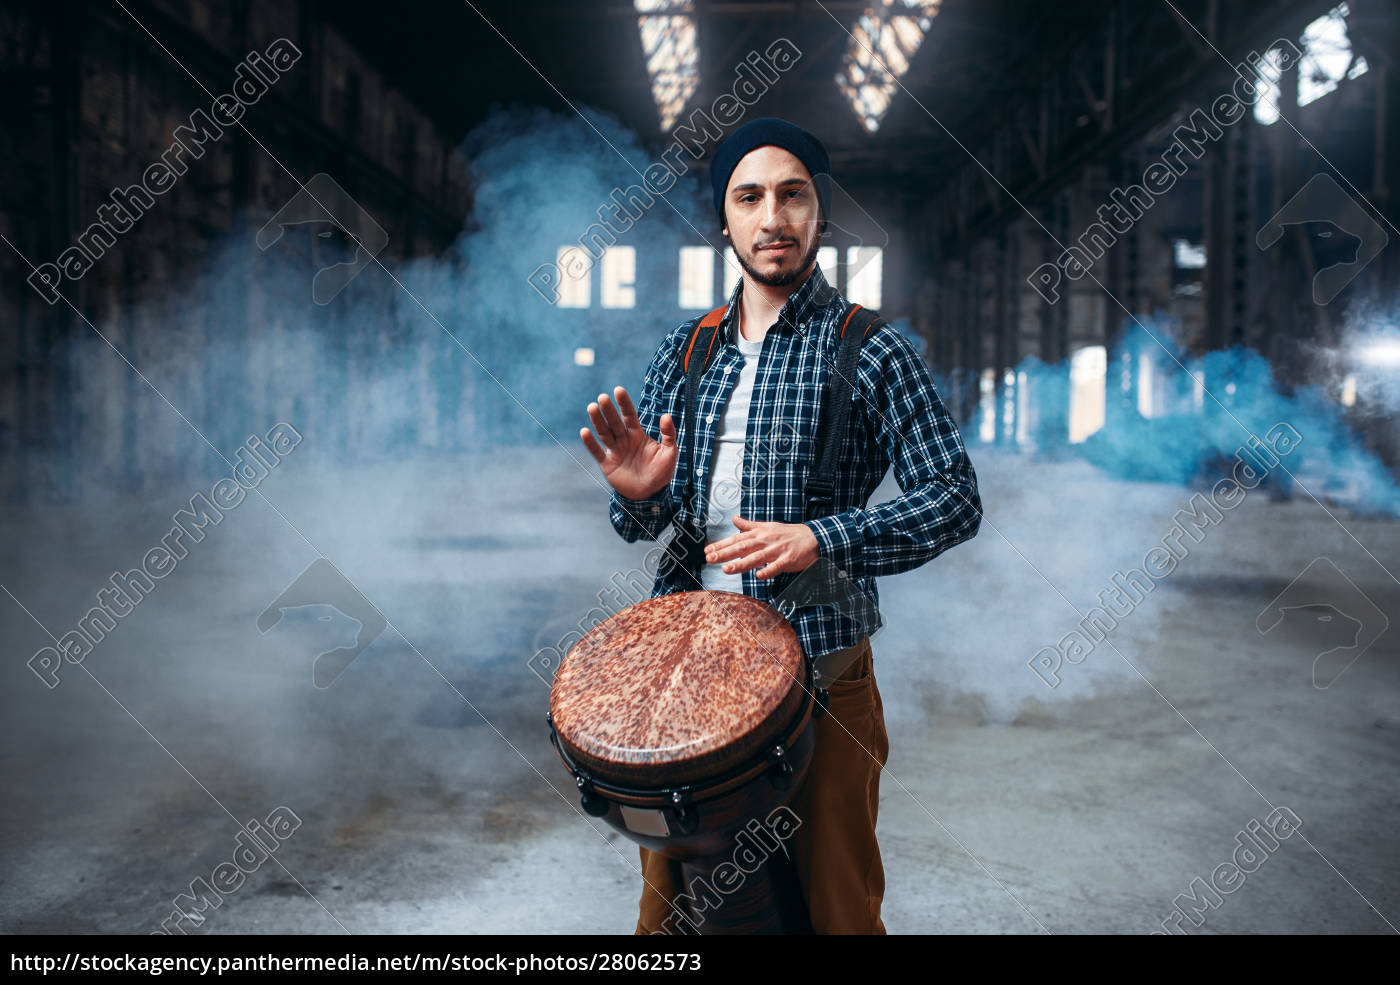 male, drummer, playing, on, wooden, drum - 28062573